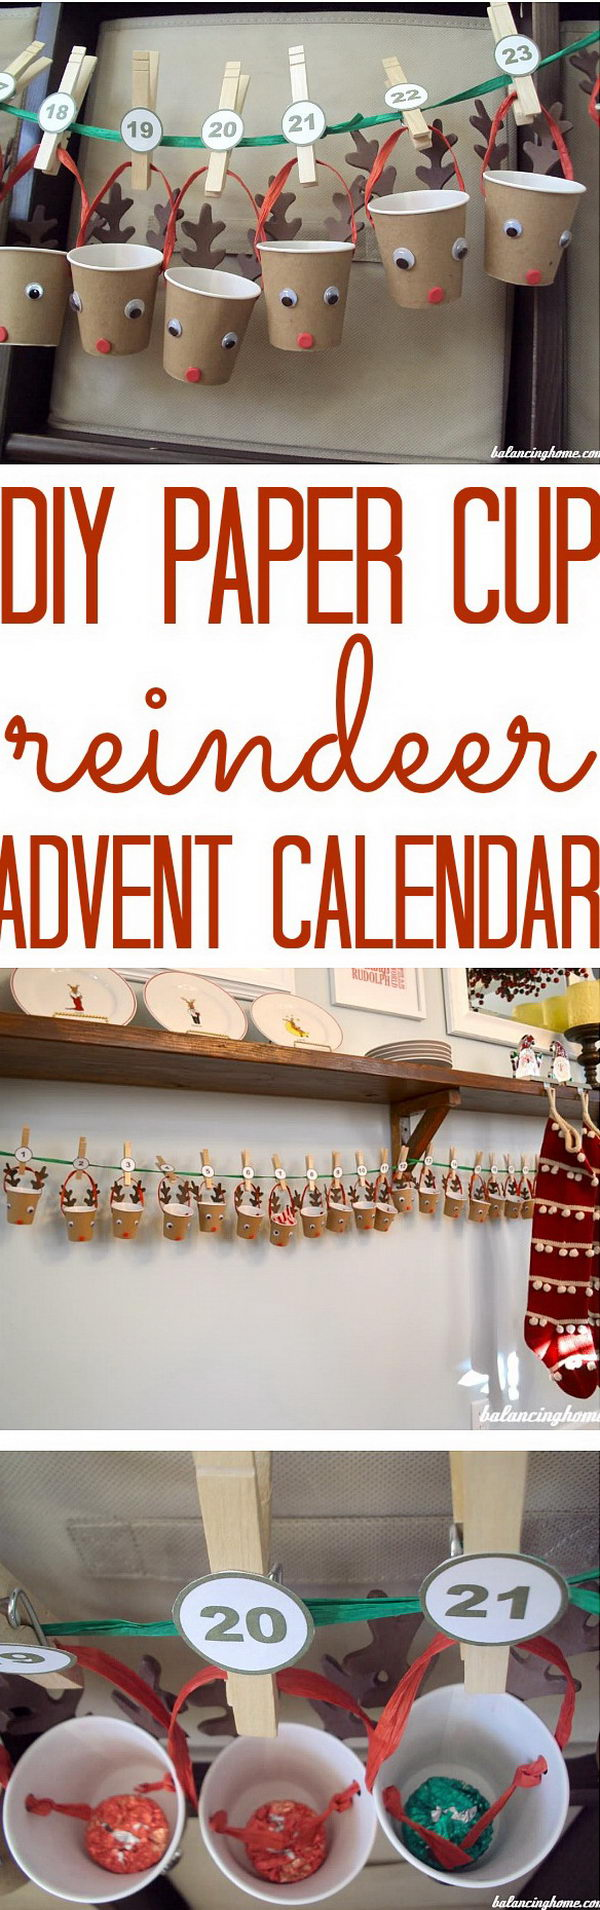 DIY Paper Cup Reindeer Advent Calendar.